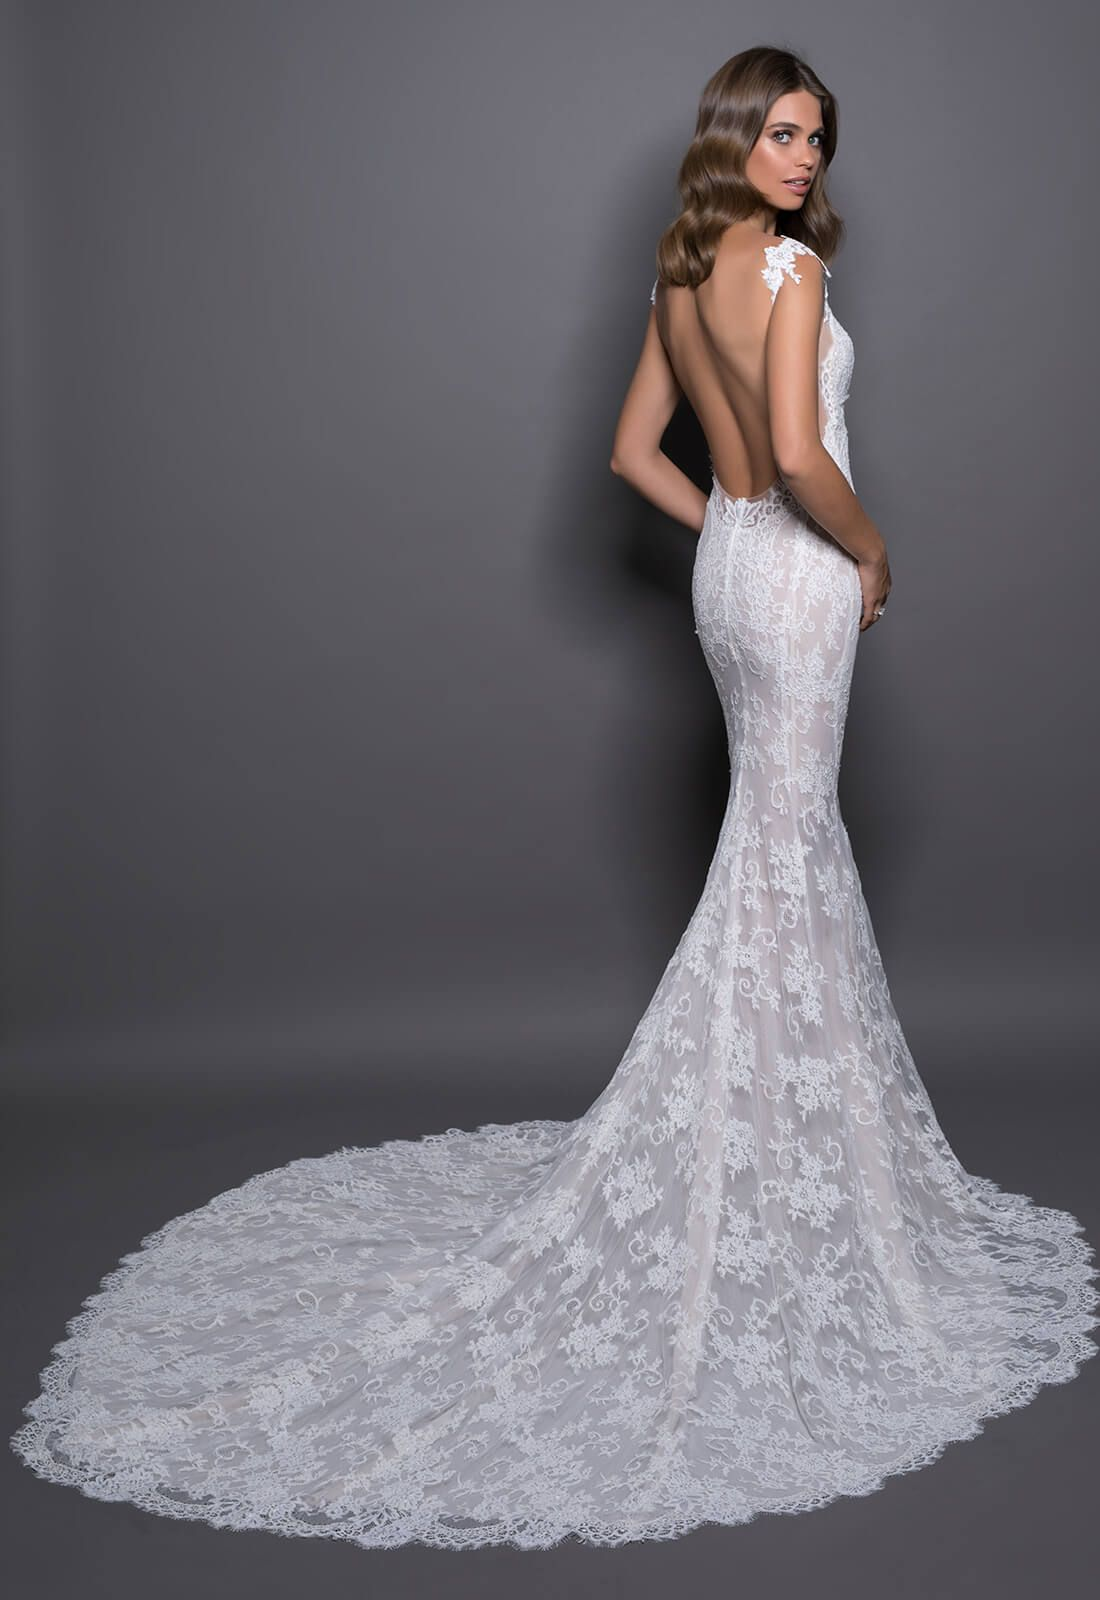 437733bc398 Love by Pnina Tornai 2018 Collection STYLE NO. 14586